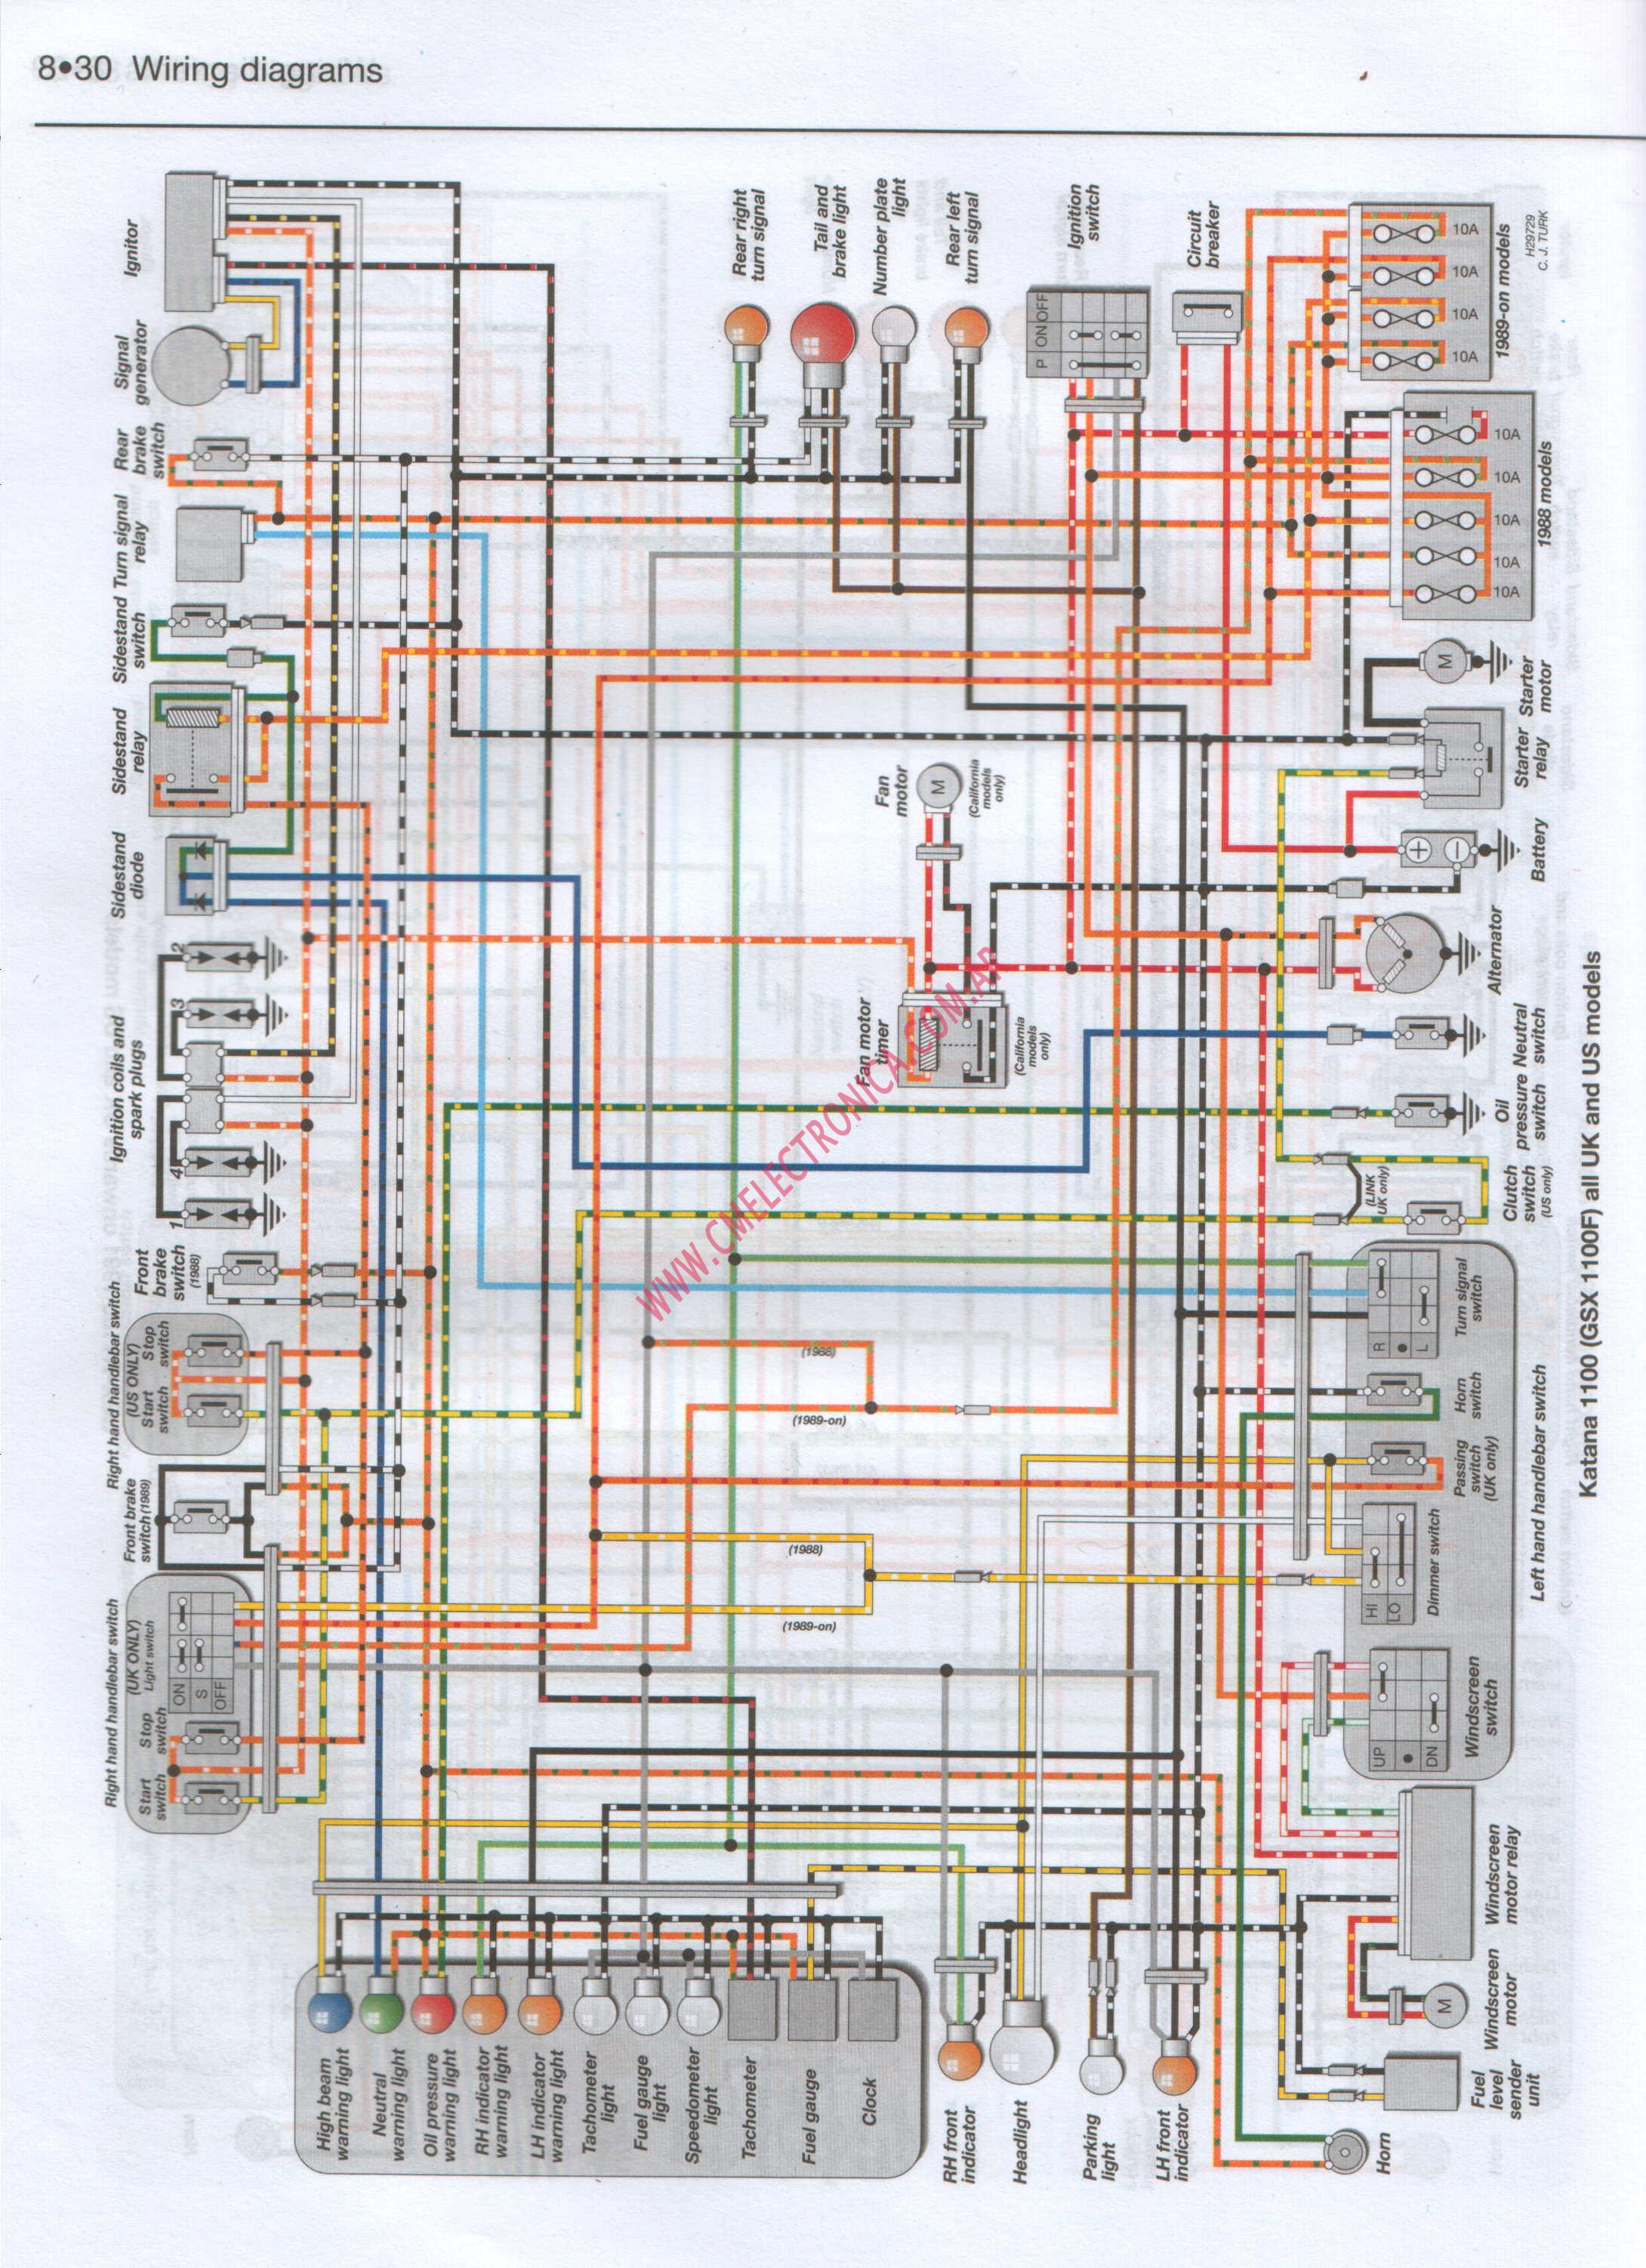 Great Germans likewise 49yw64 further 01 03 Stock Sound System Upgrade Info  51712 additionally Dsp Inverter Circuit Diagram also Page 4. on tl 1000 wiring schematic